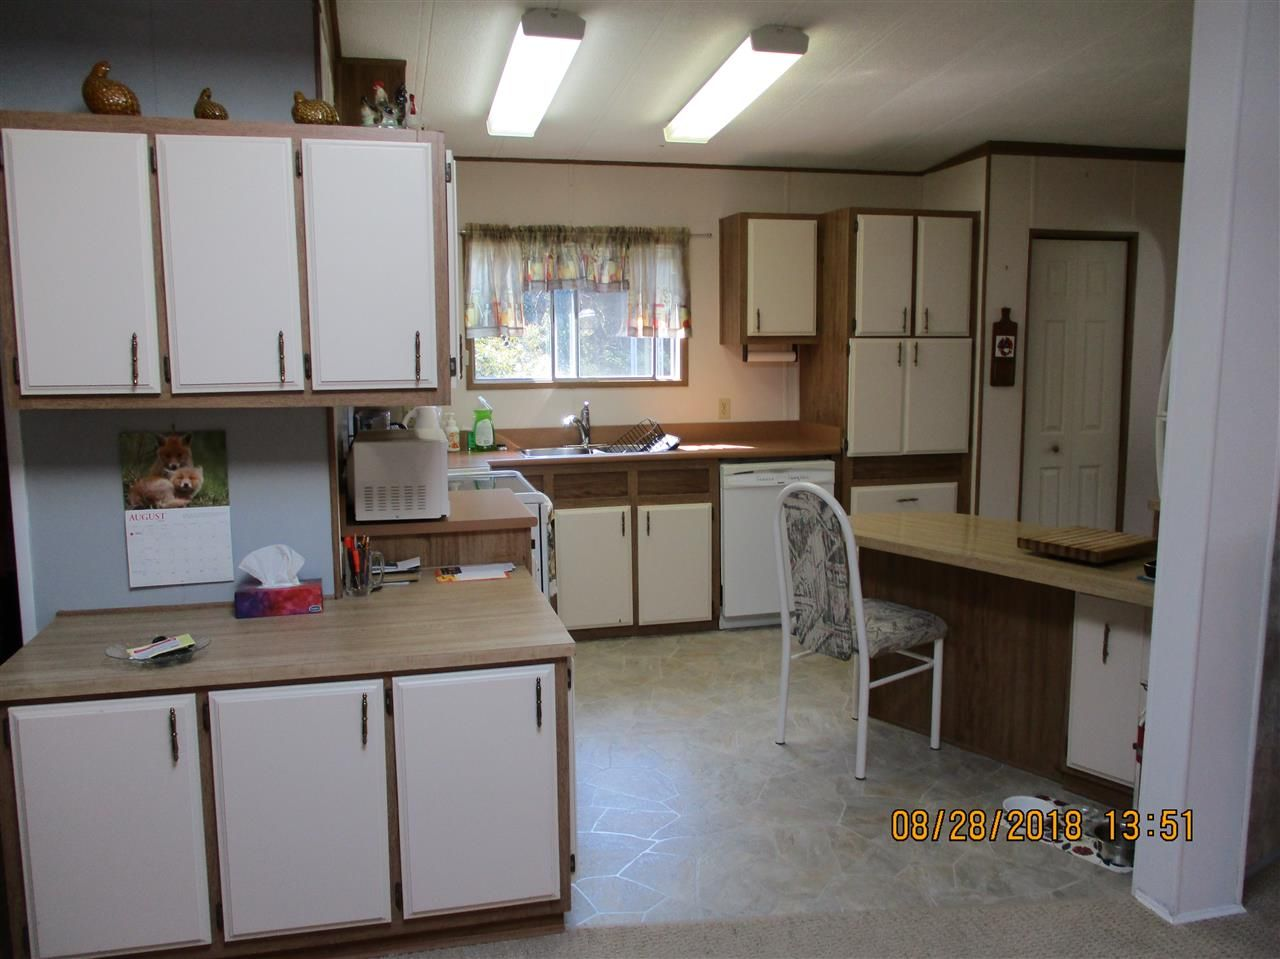 """Photo 8: Photos: 57 2305 200 Street in Langley: Brookswood Langley Manufactured Home for sale in """"CEDAR LANE"""" : MLS®# R2357125"""